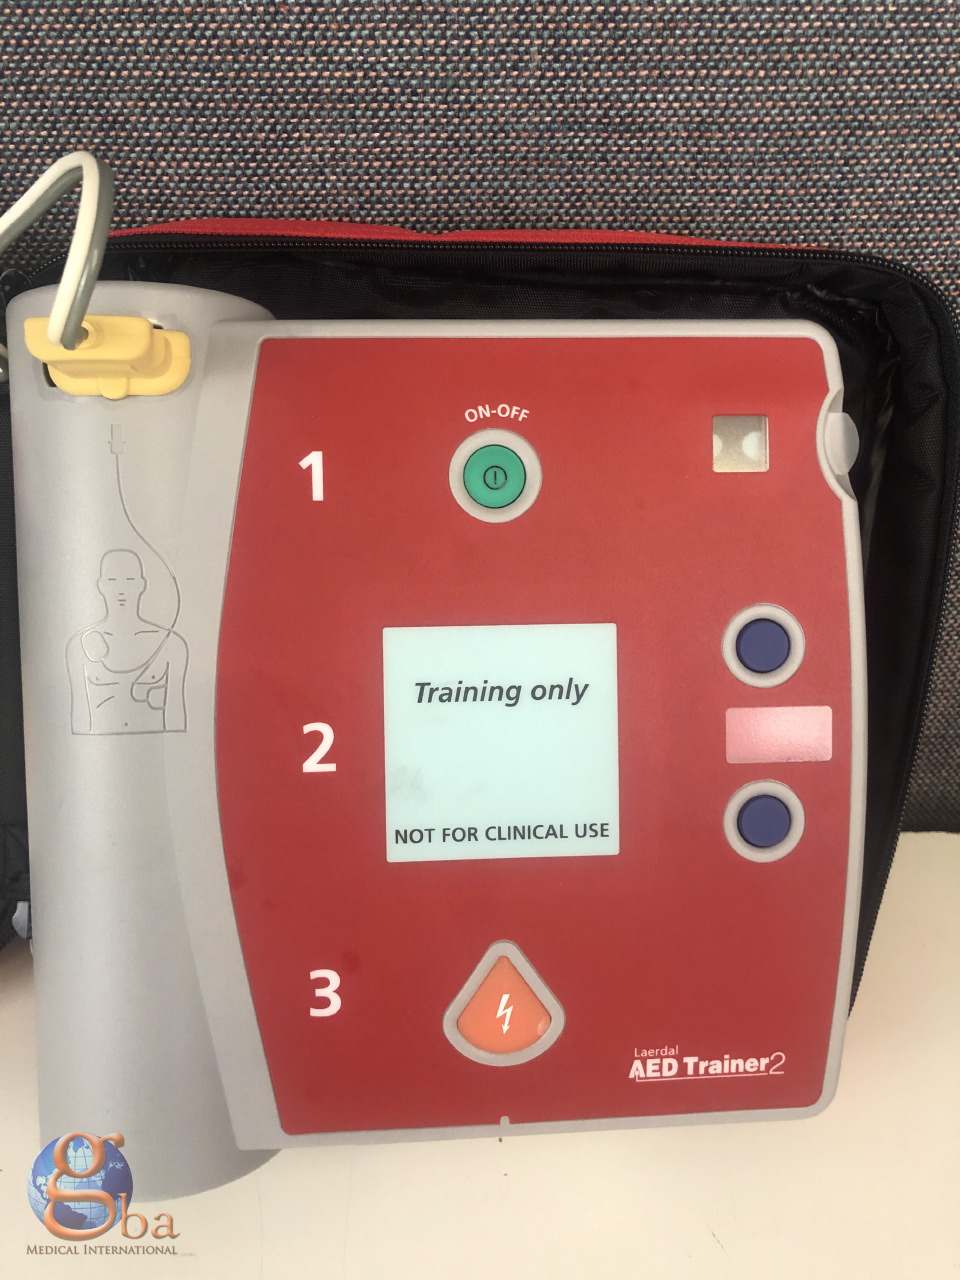 Laerdal Aed Trainer 2 - Www imagez co